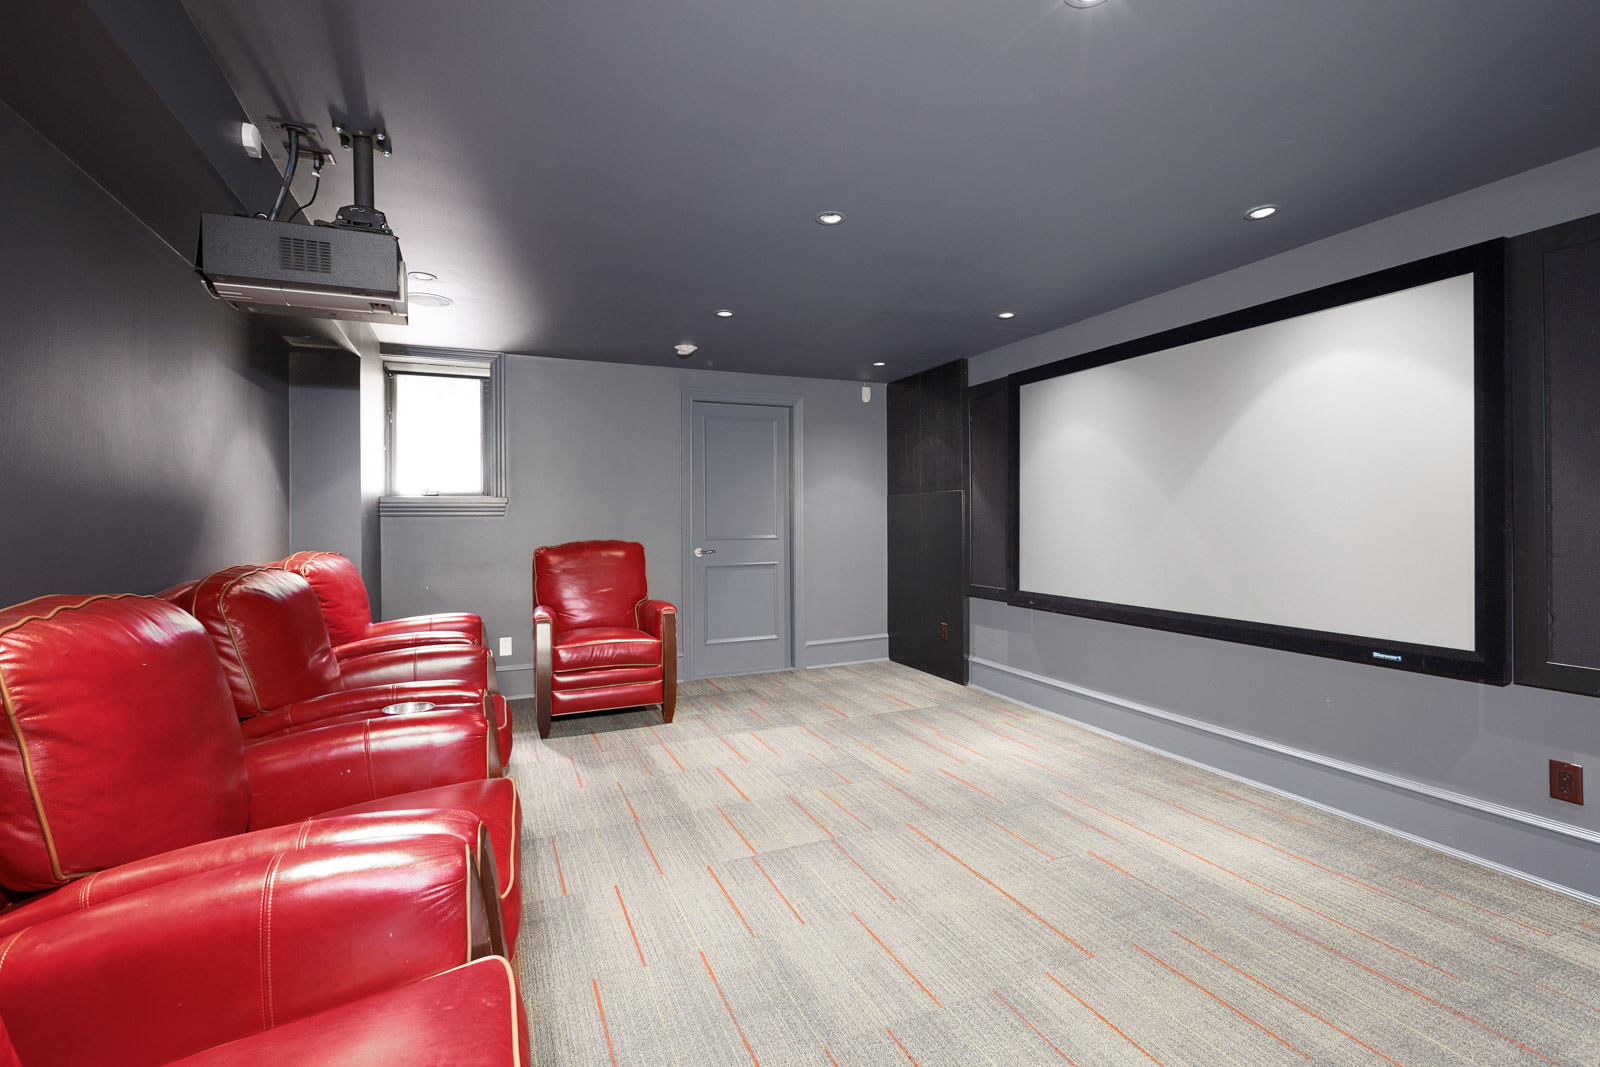 Theater room with red sofa chairs inside Vancouver luxury rental home.